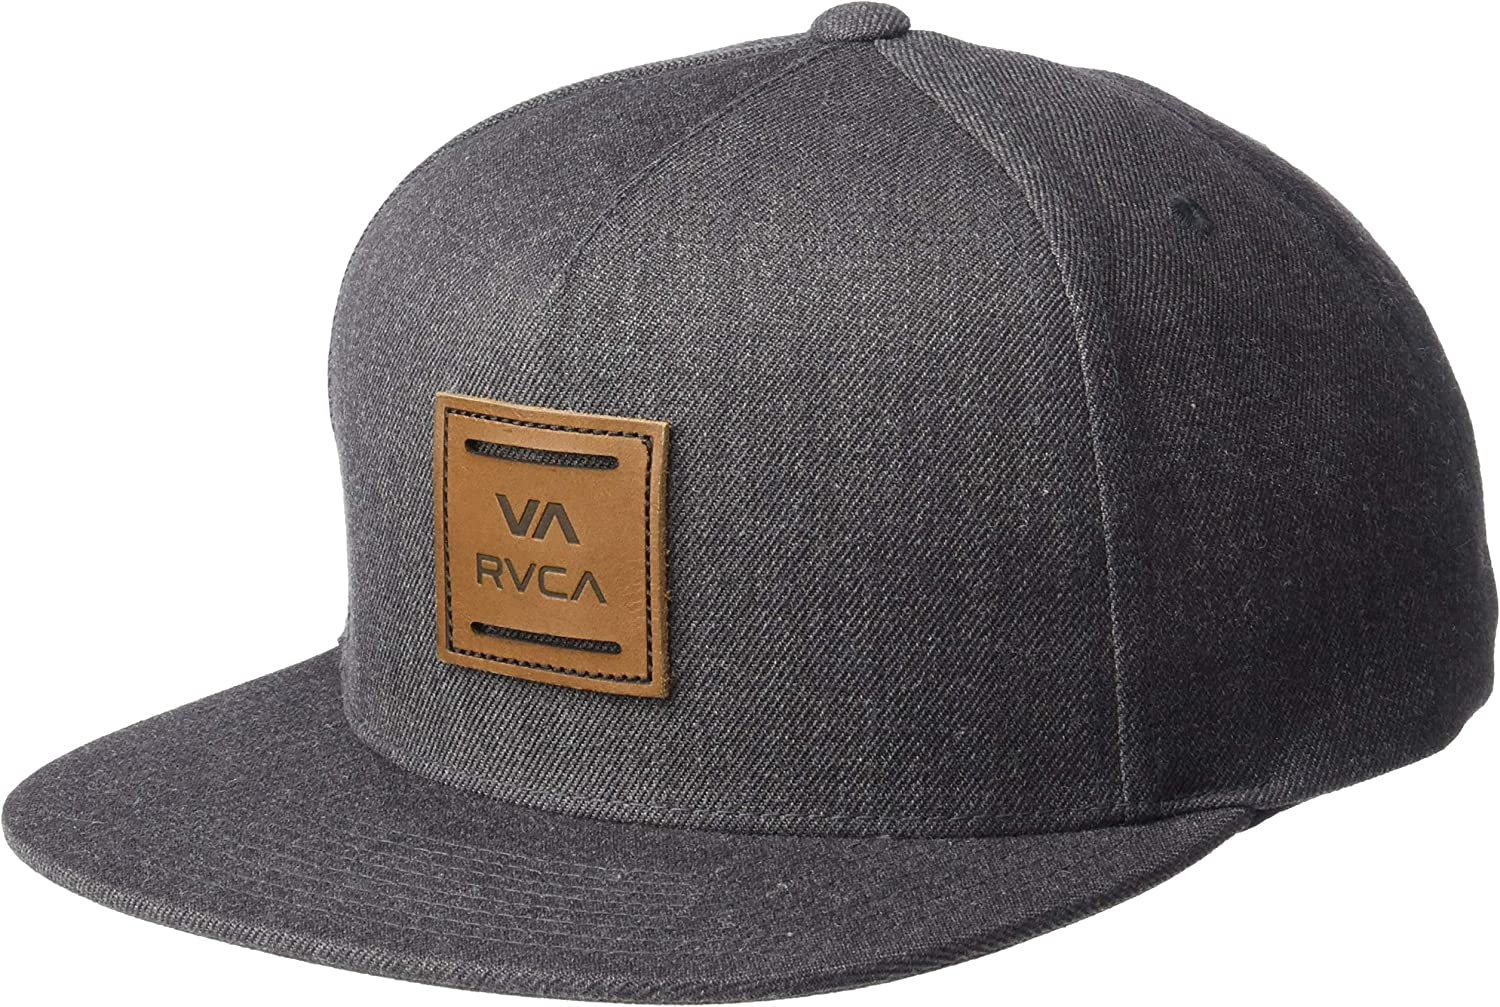 RVCA Va All The Way Snapback Hat Brown 1SZ: Clothing